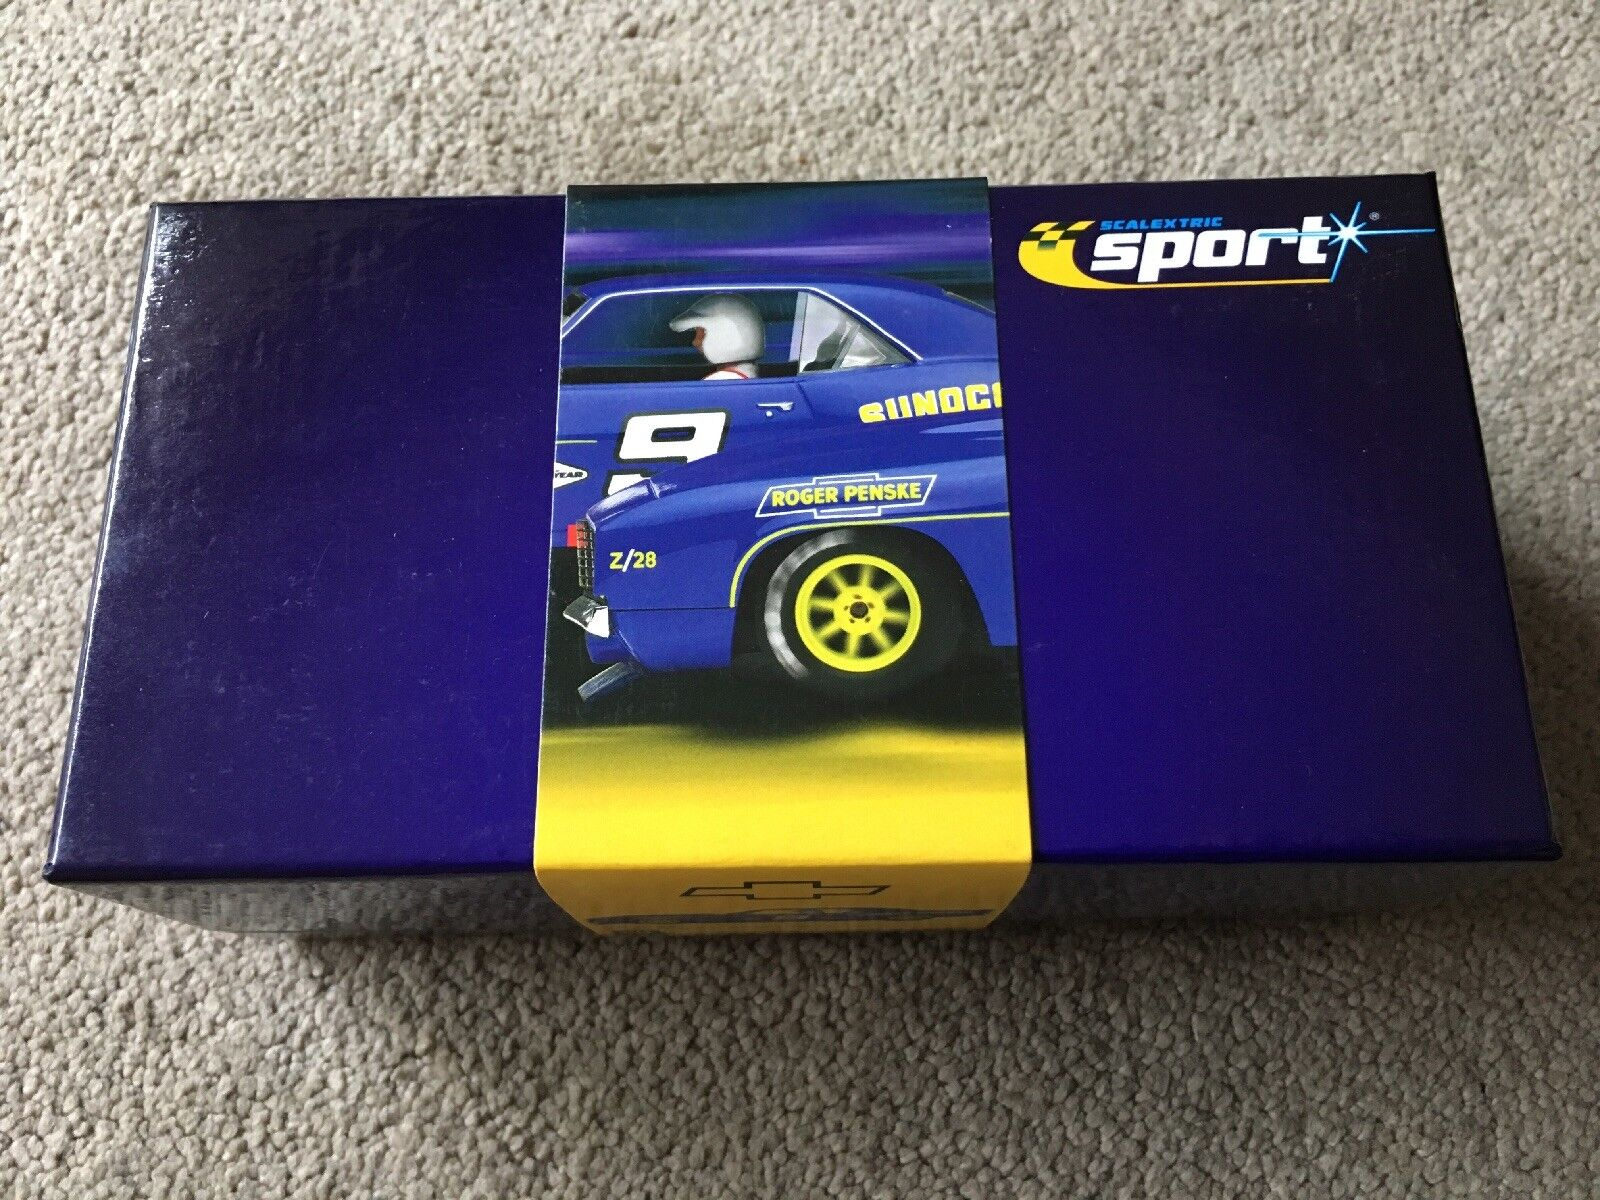 Scalextric Chevy Camaro Sport Limited Edition C2400 No 9 Of 4400